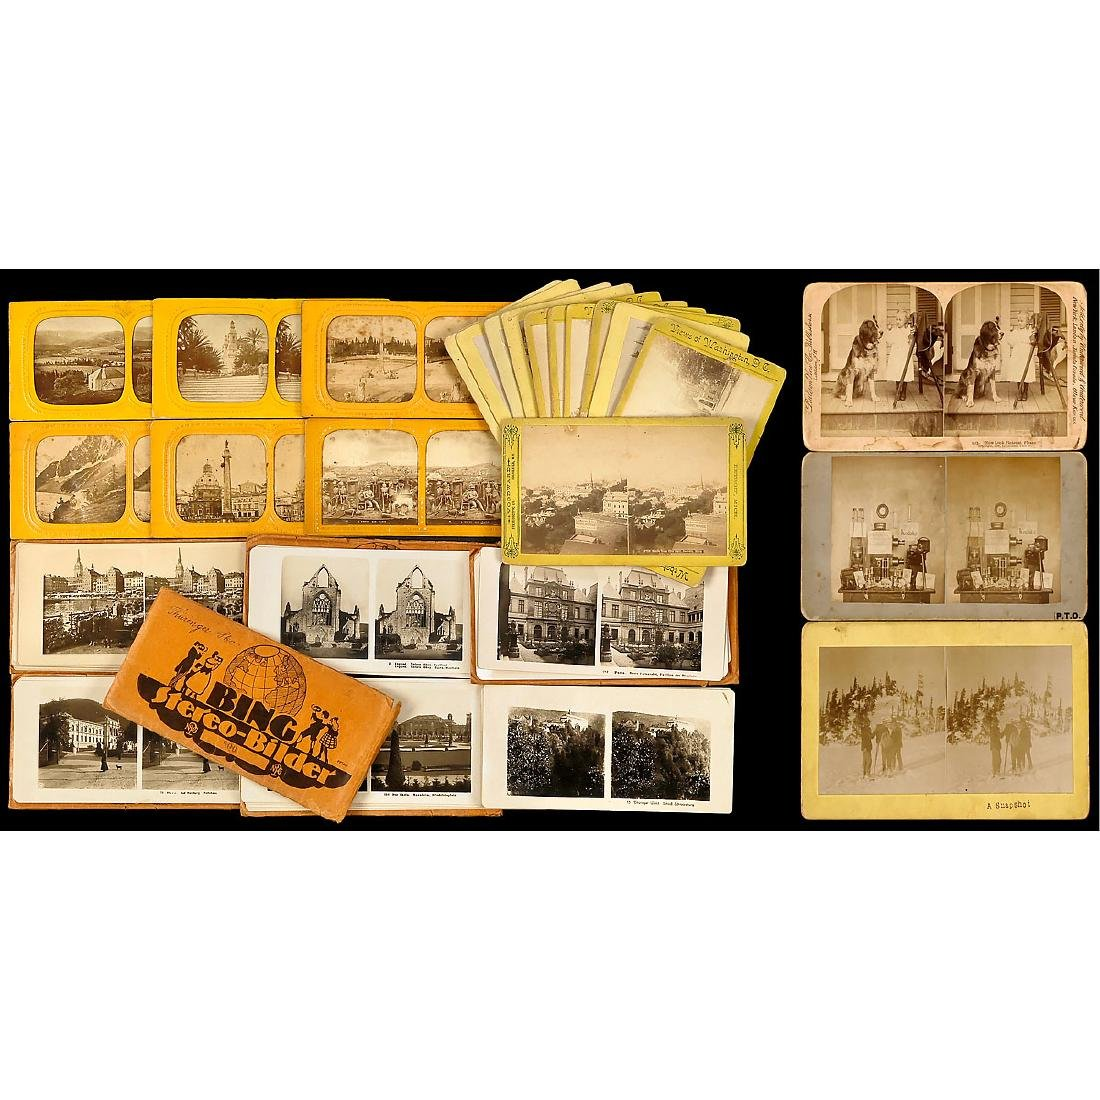 Lot of Stereo Cards (9 x 18 and 10 x 18 cm)